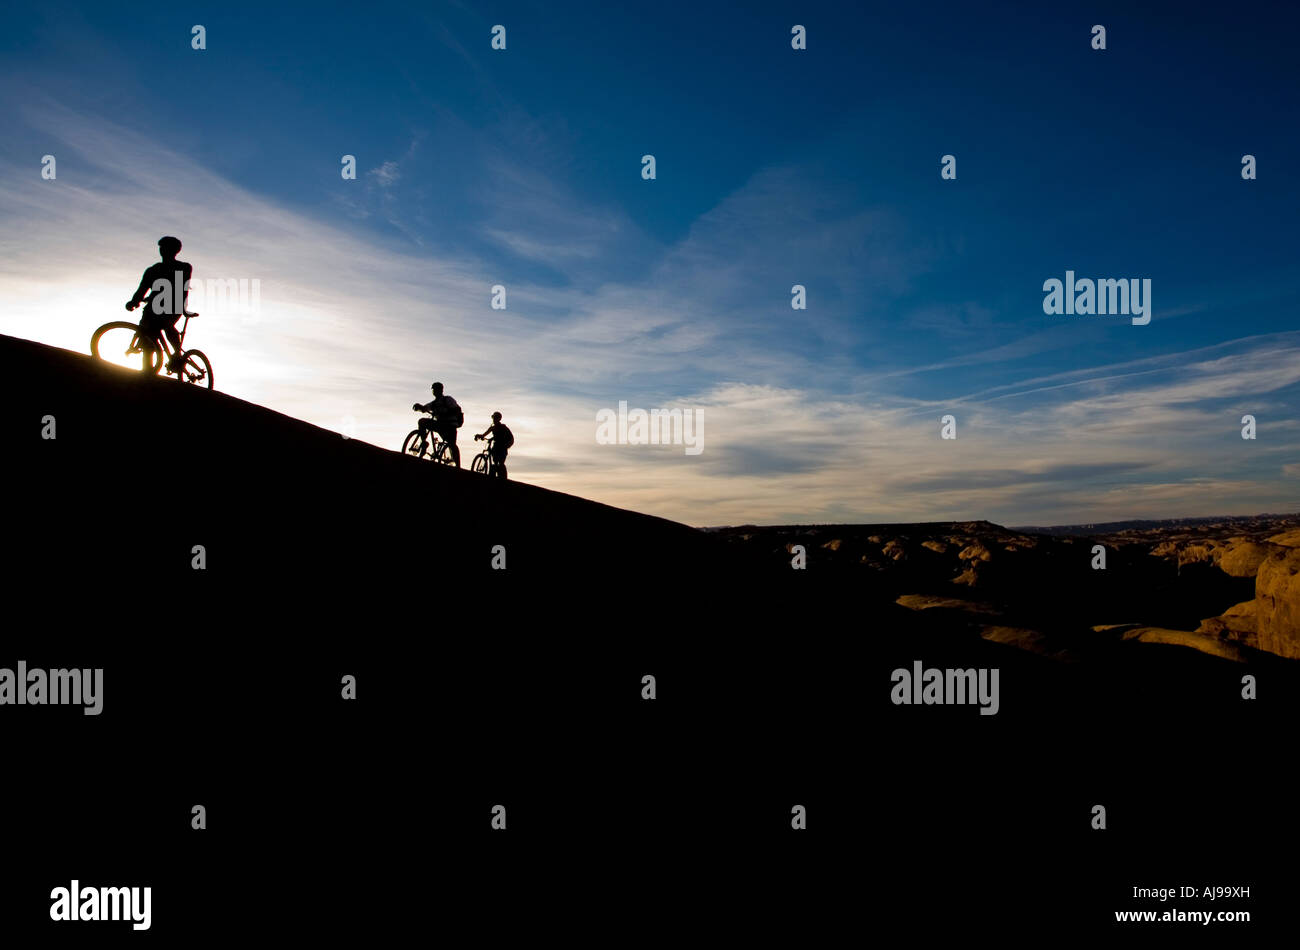 Mountain bikers, Moab, Utah - Stock Image